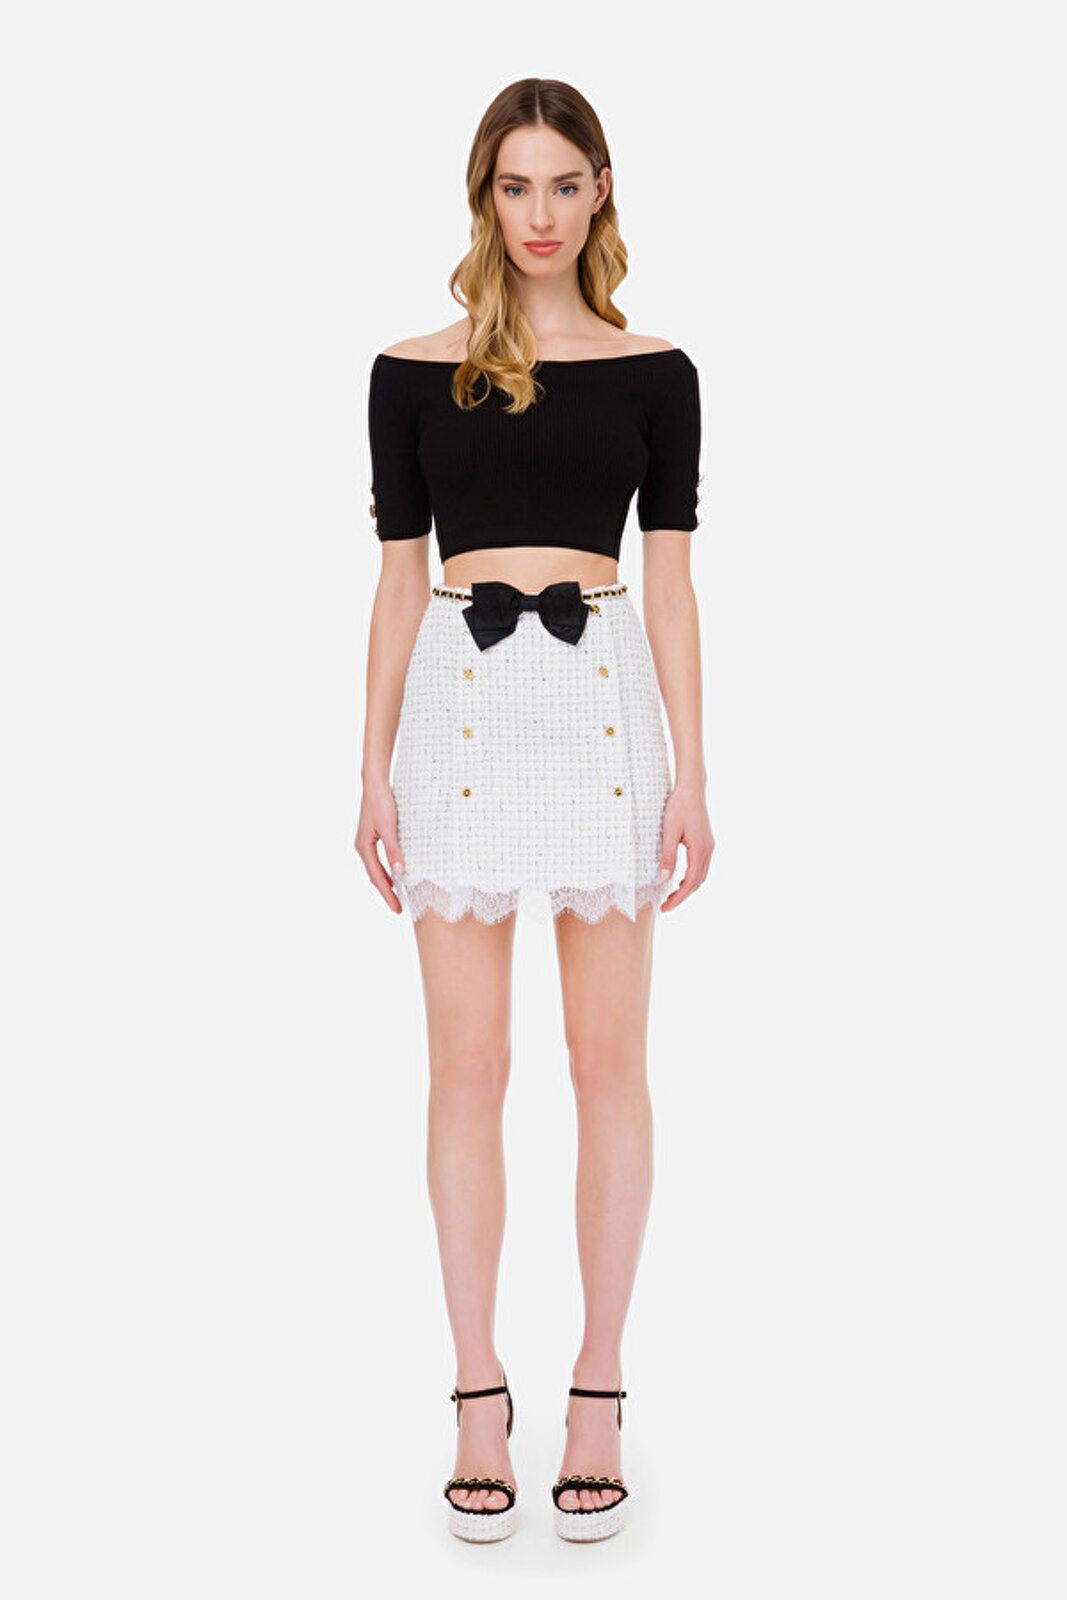 Mini Skirt With Belt And Bow - Elisabetta Franchi